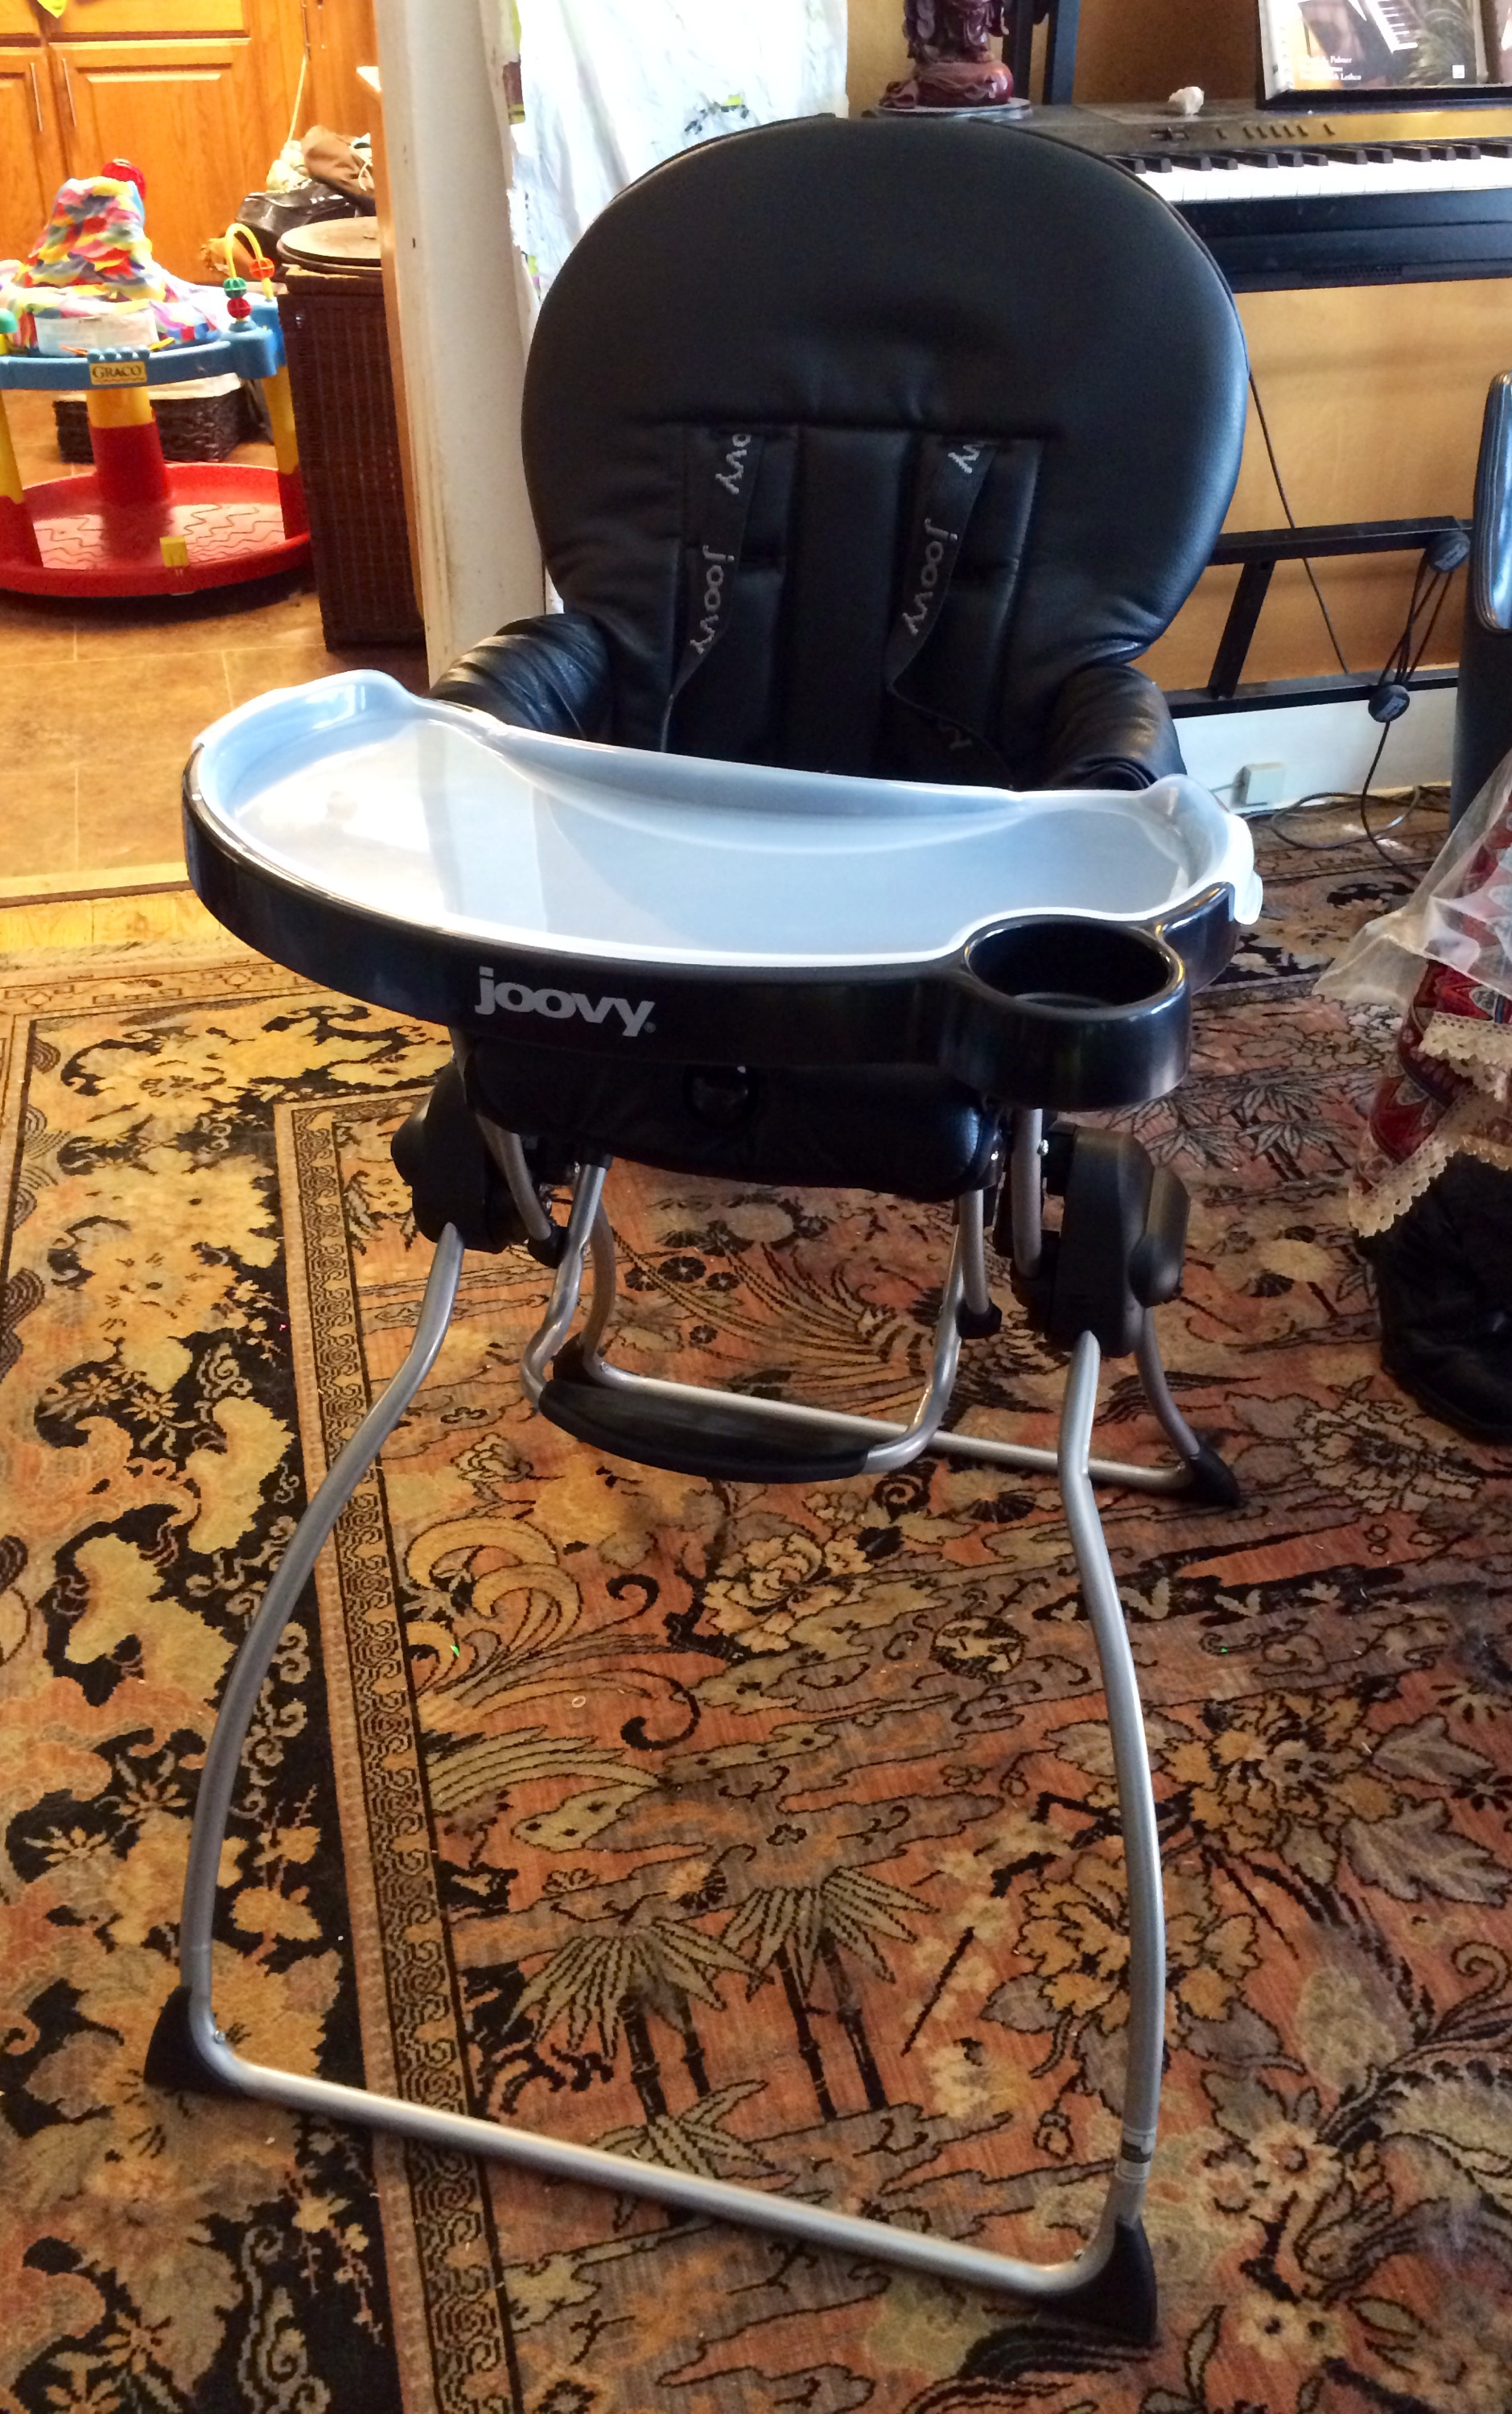 Joovy Nook High Chair  SHA Winnnnggg! Gorgeous, Compact, Functional, And  MOD  The SPORTS CAR Of High Chairs!